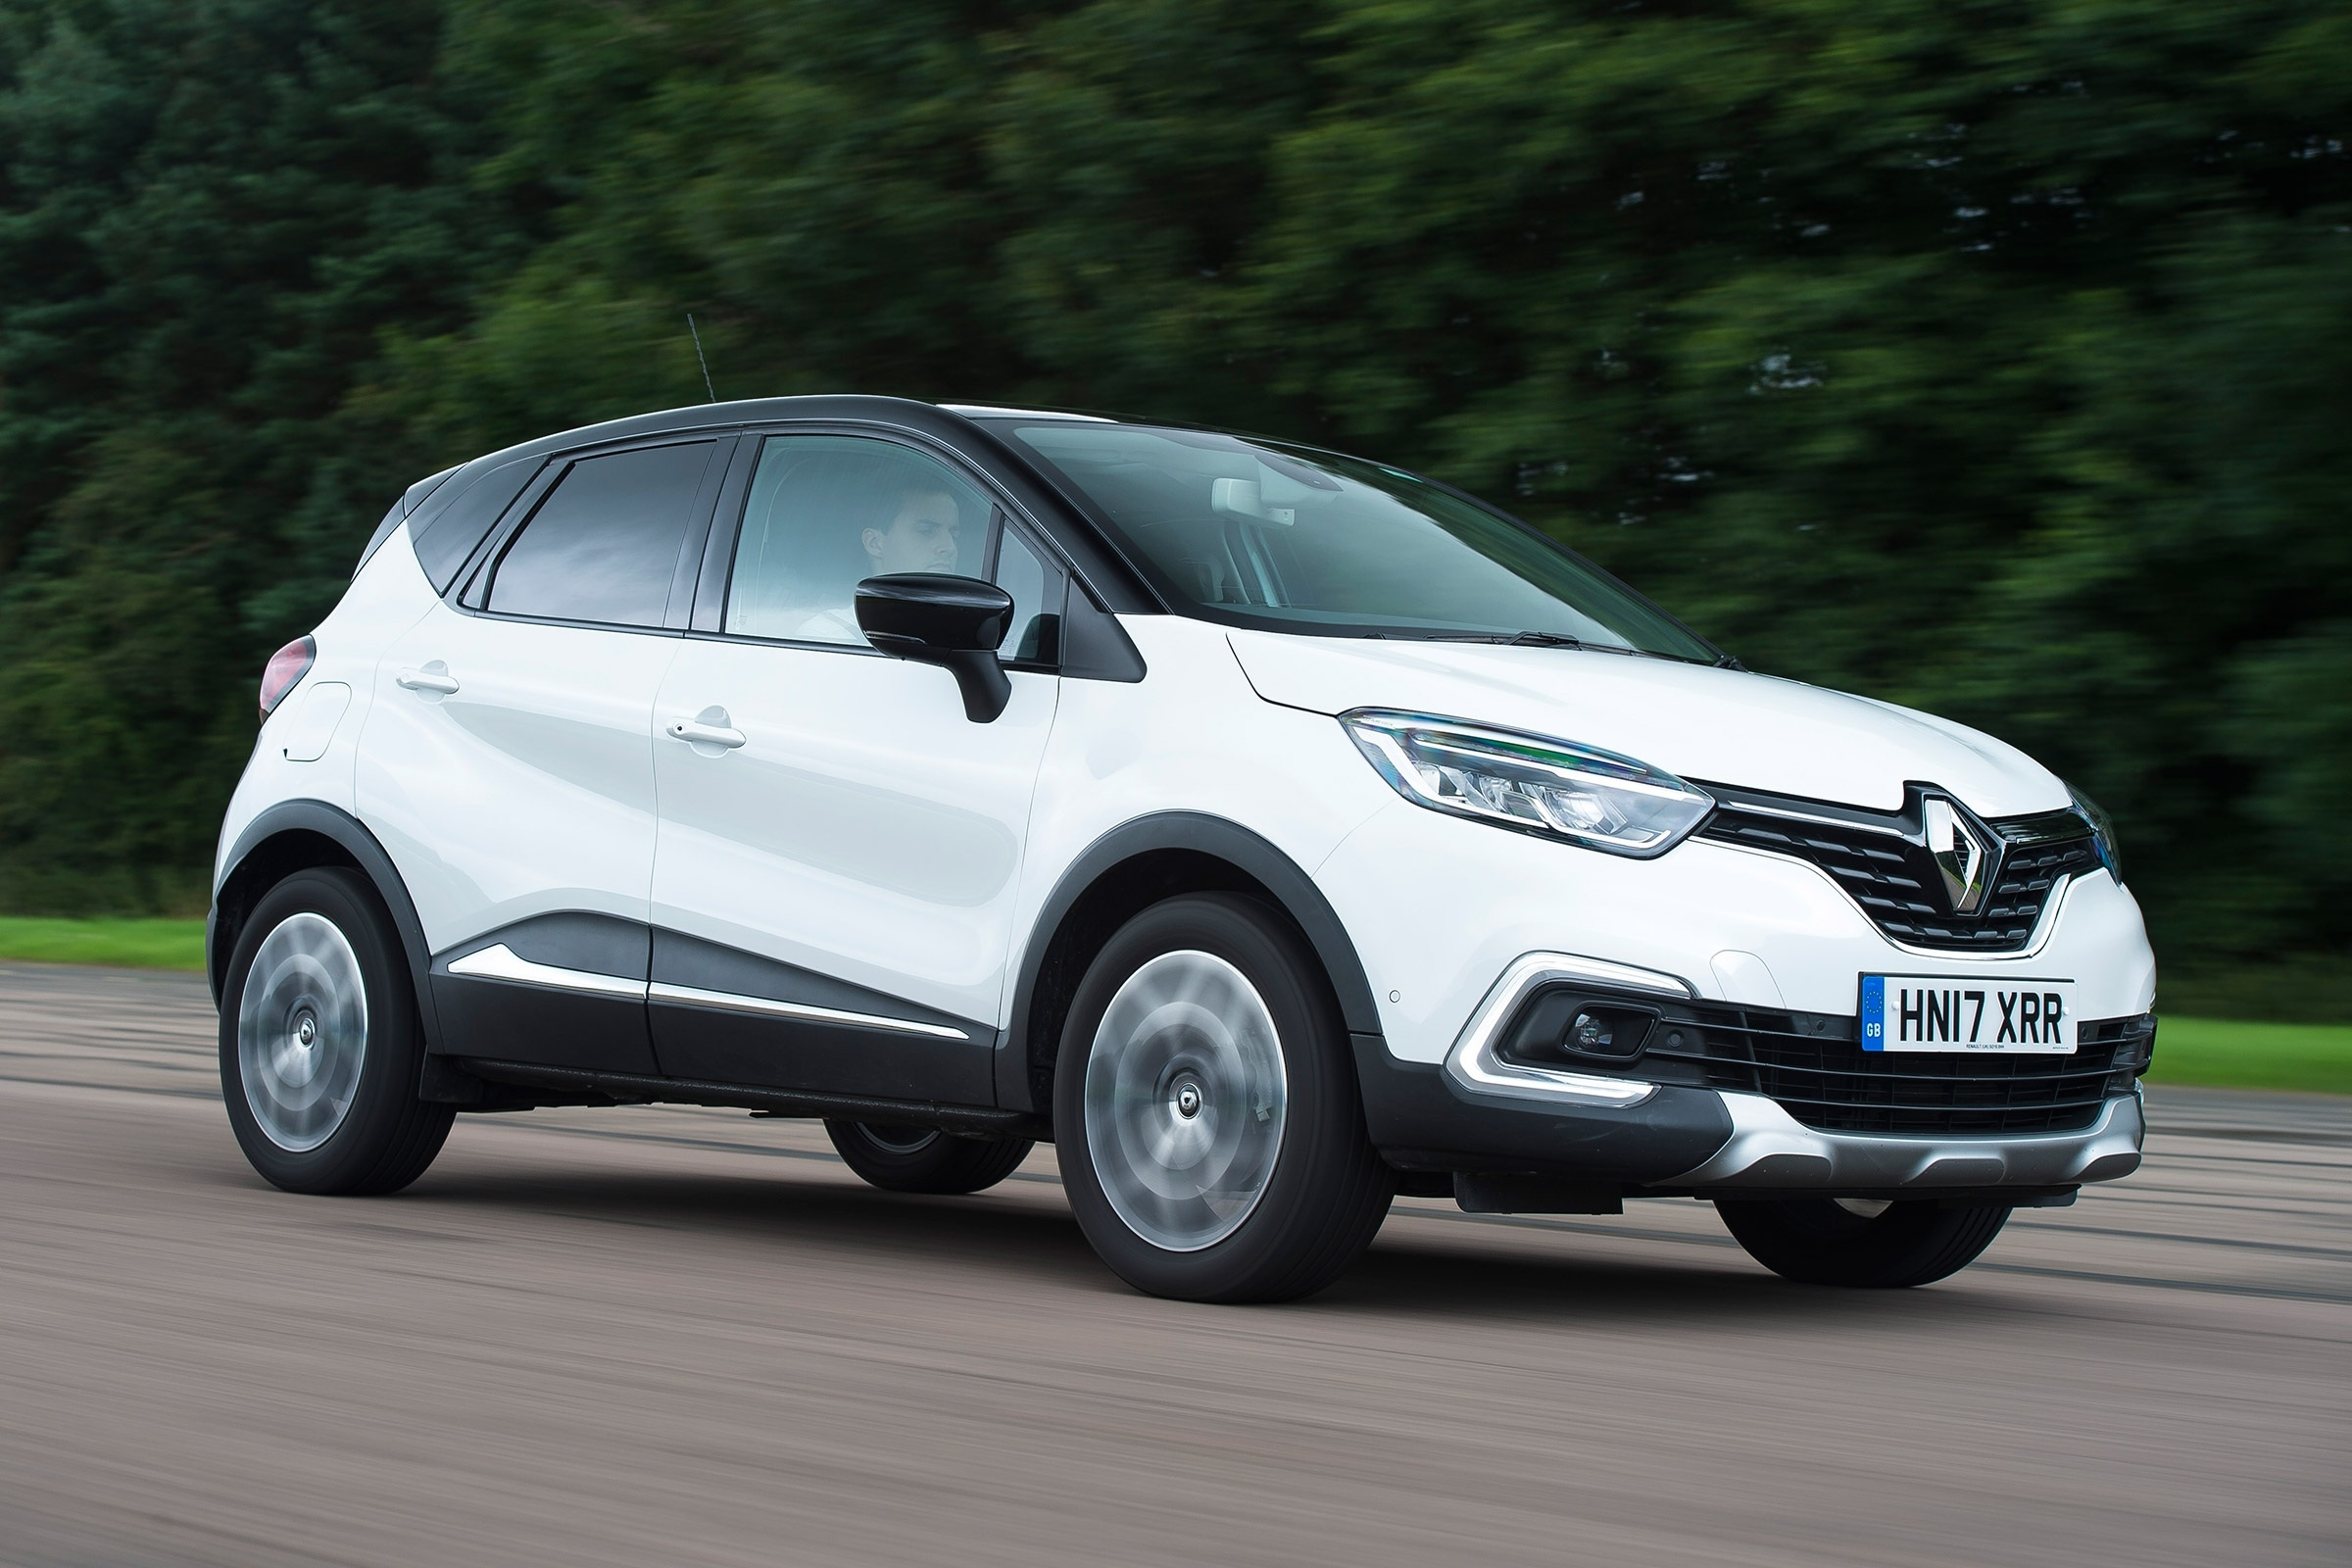 81 All New 2020 Renault Kadjar Photos